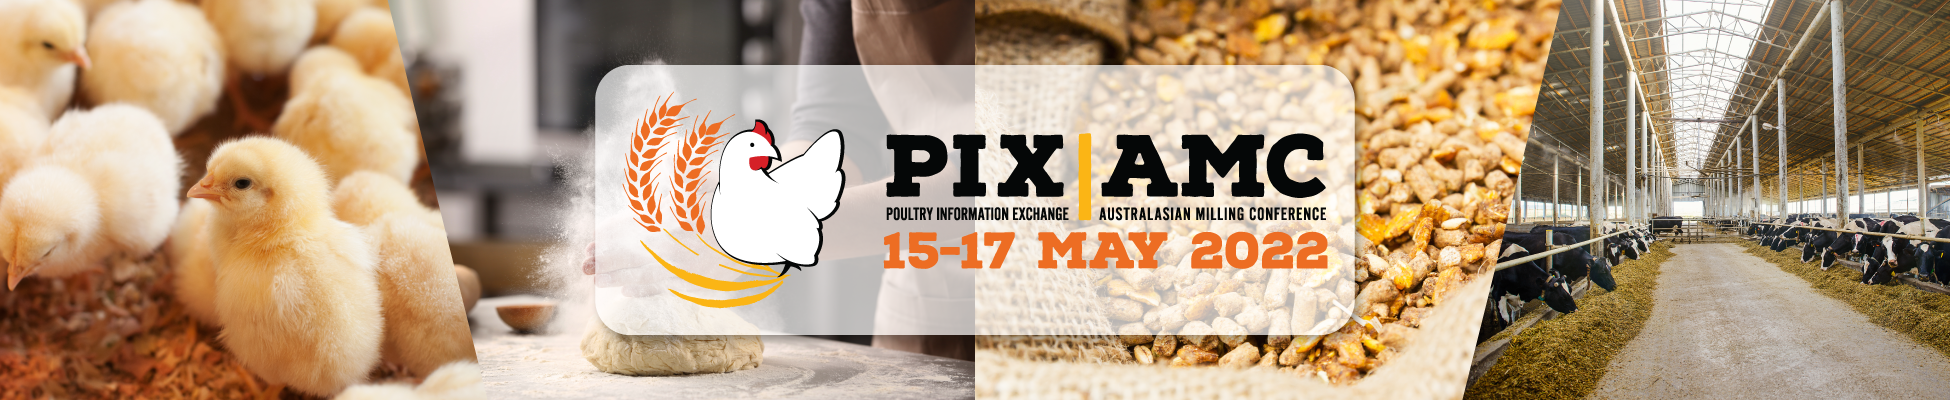 Poultry Information Exchange and Australasian Milling Conference 2022